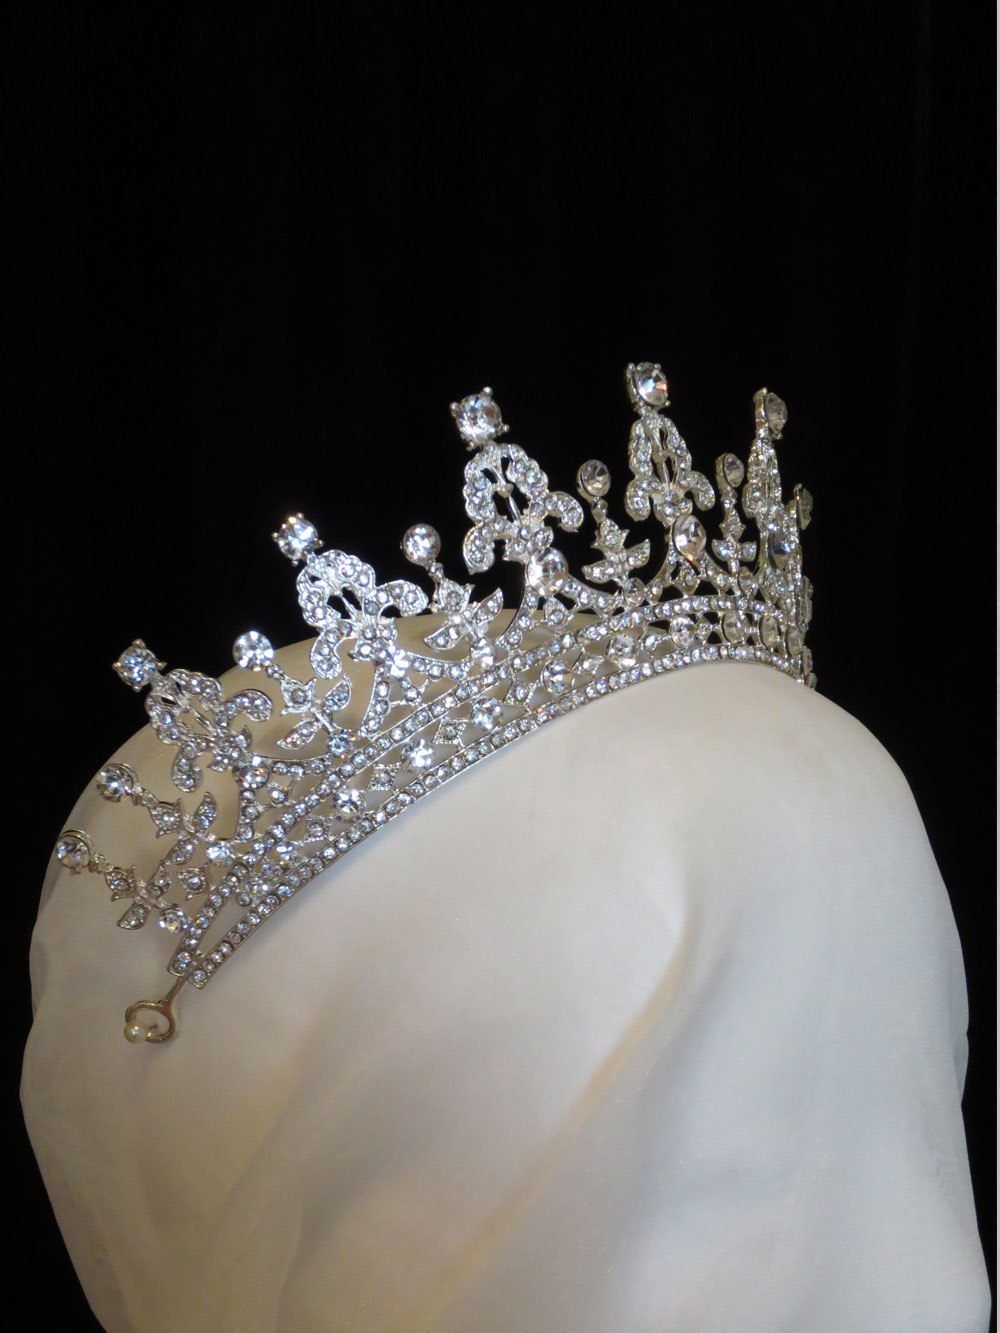 John-Zimmerman-Couture-Headpieces-and-Tiaras-Model-Diamond-Gallery-Image-2